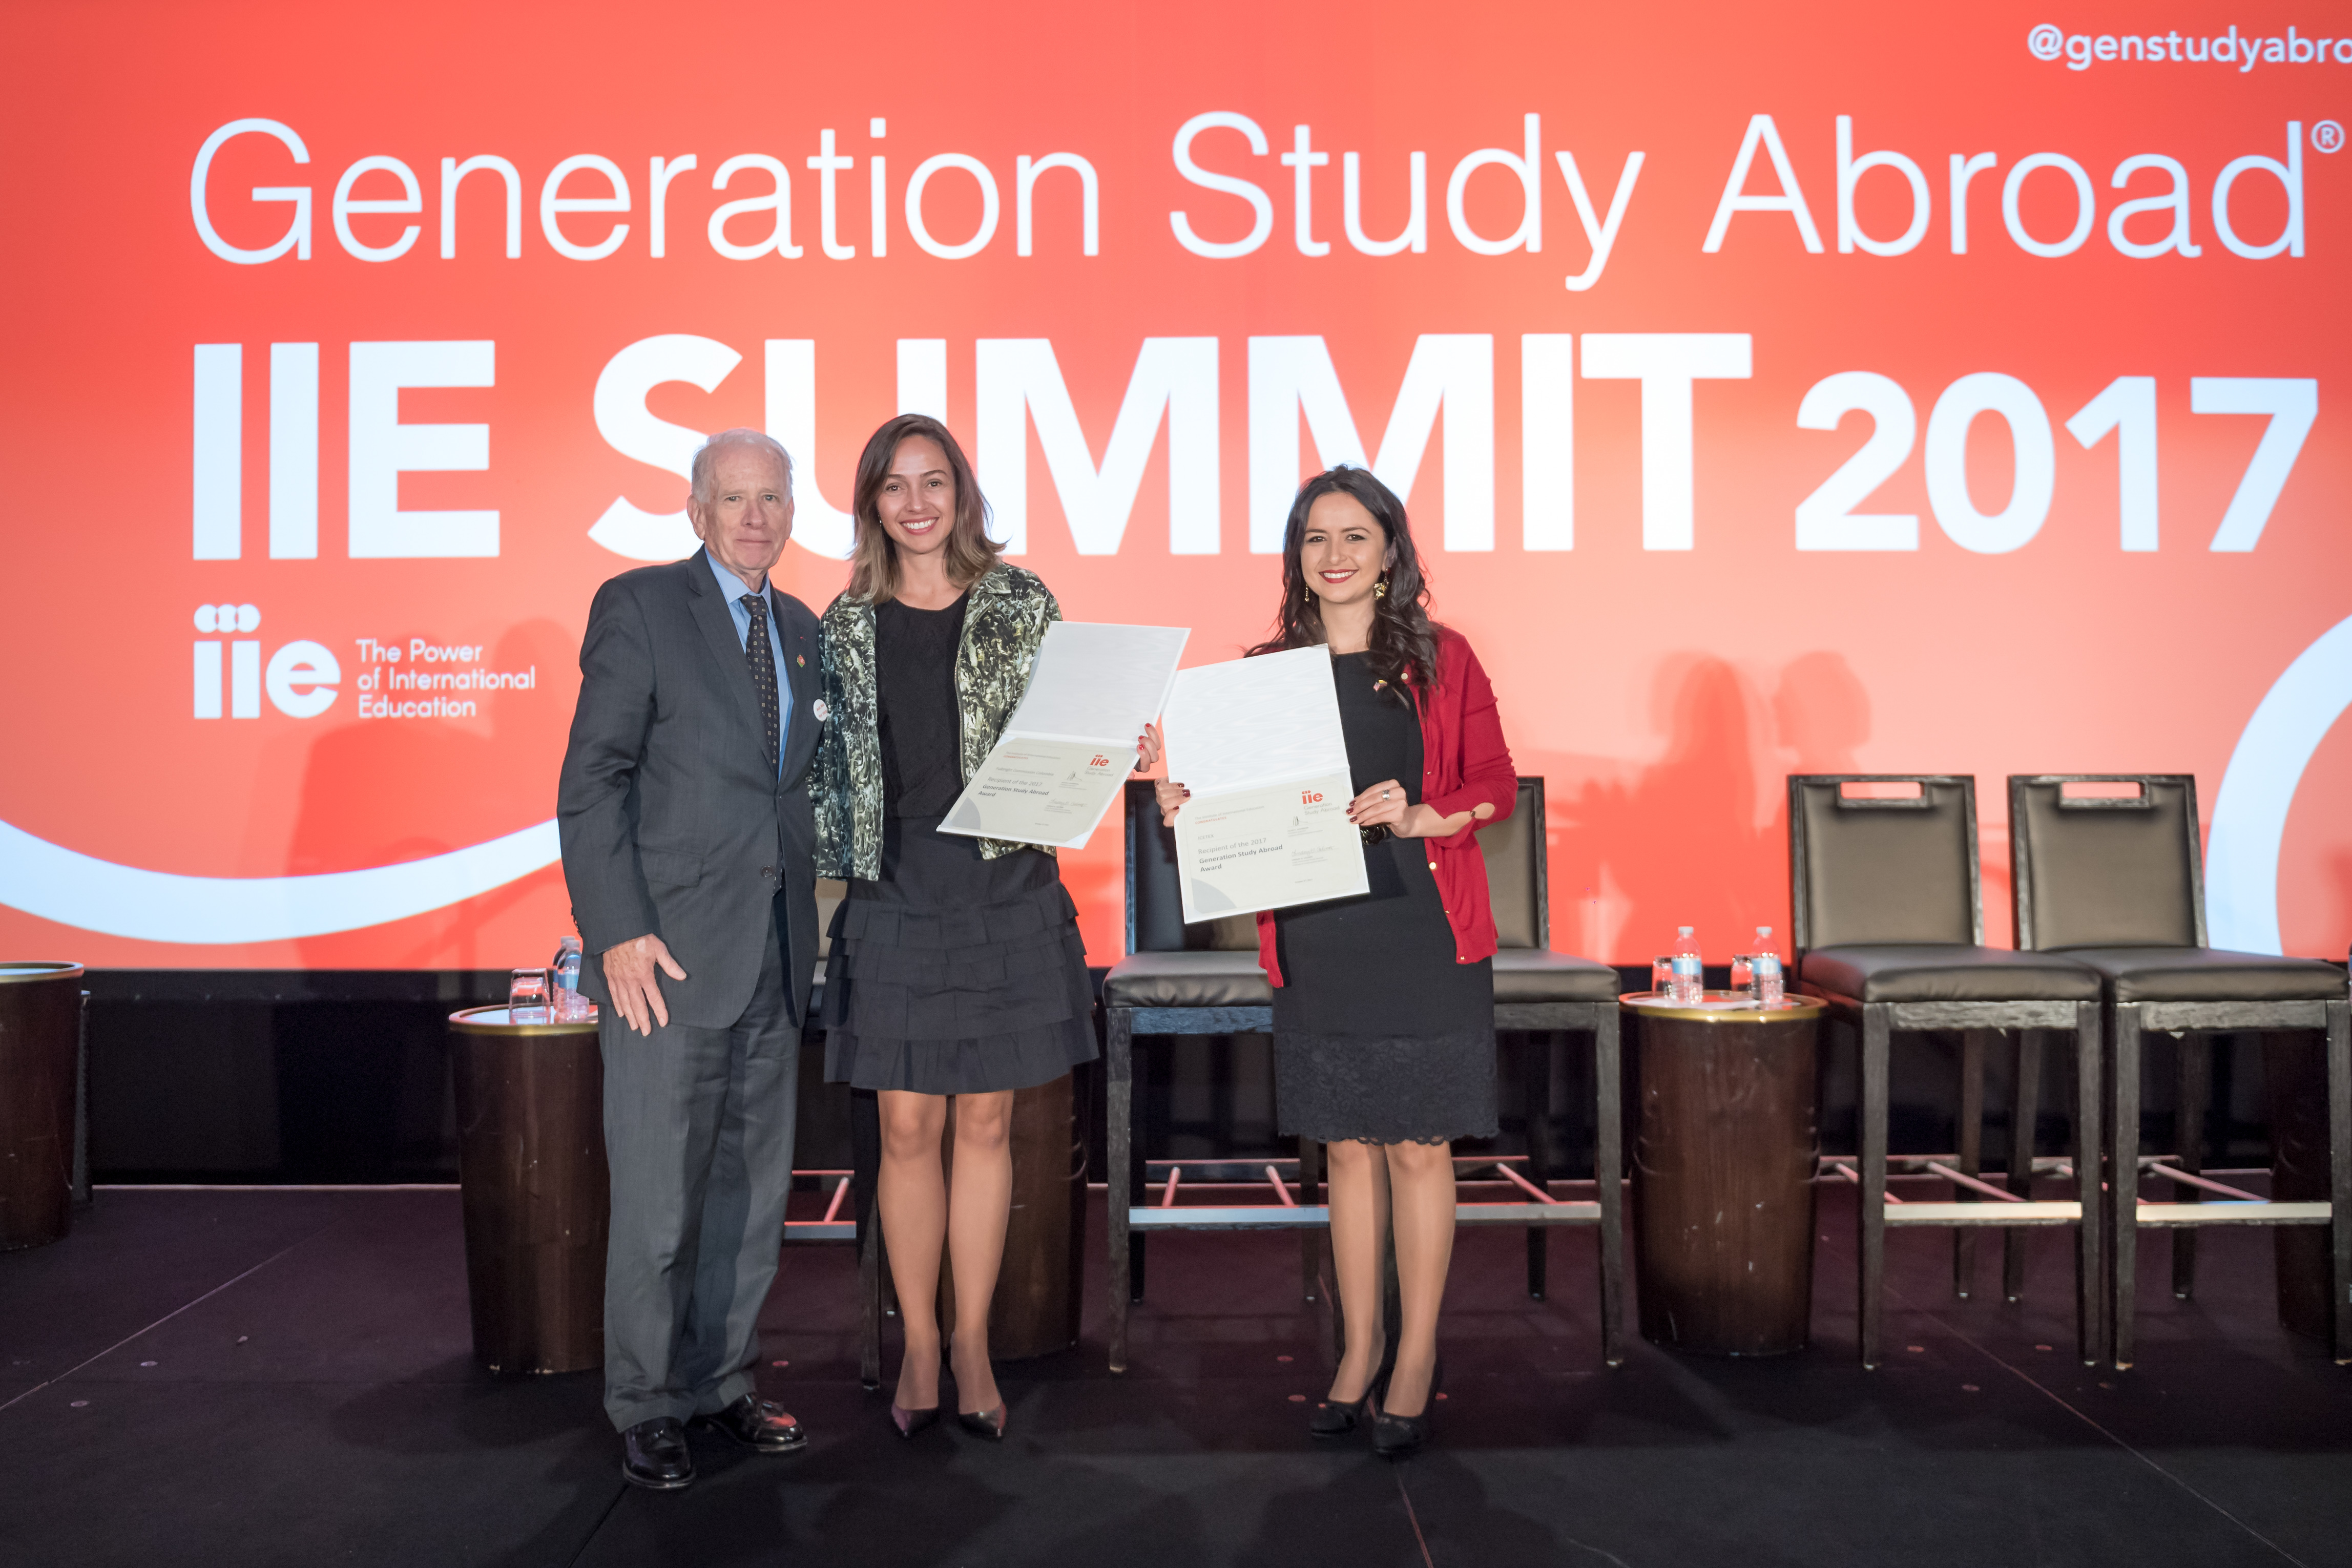 Generation Study Abroad Winners receiving award 2017-ICETEX, Colombia